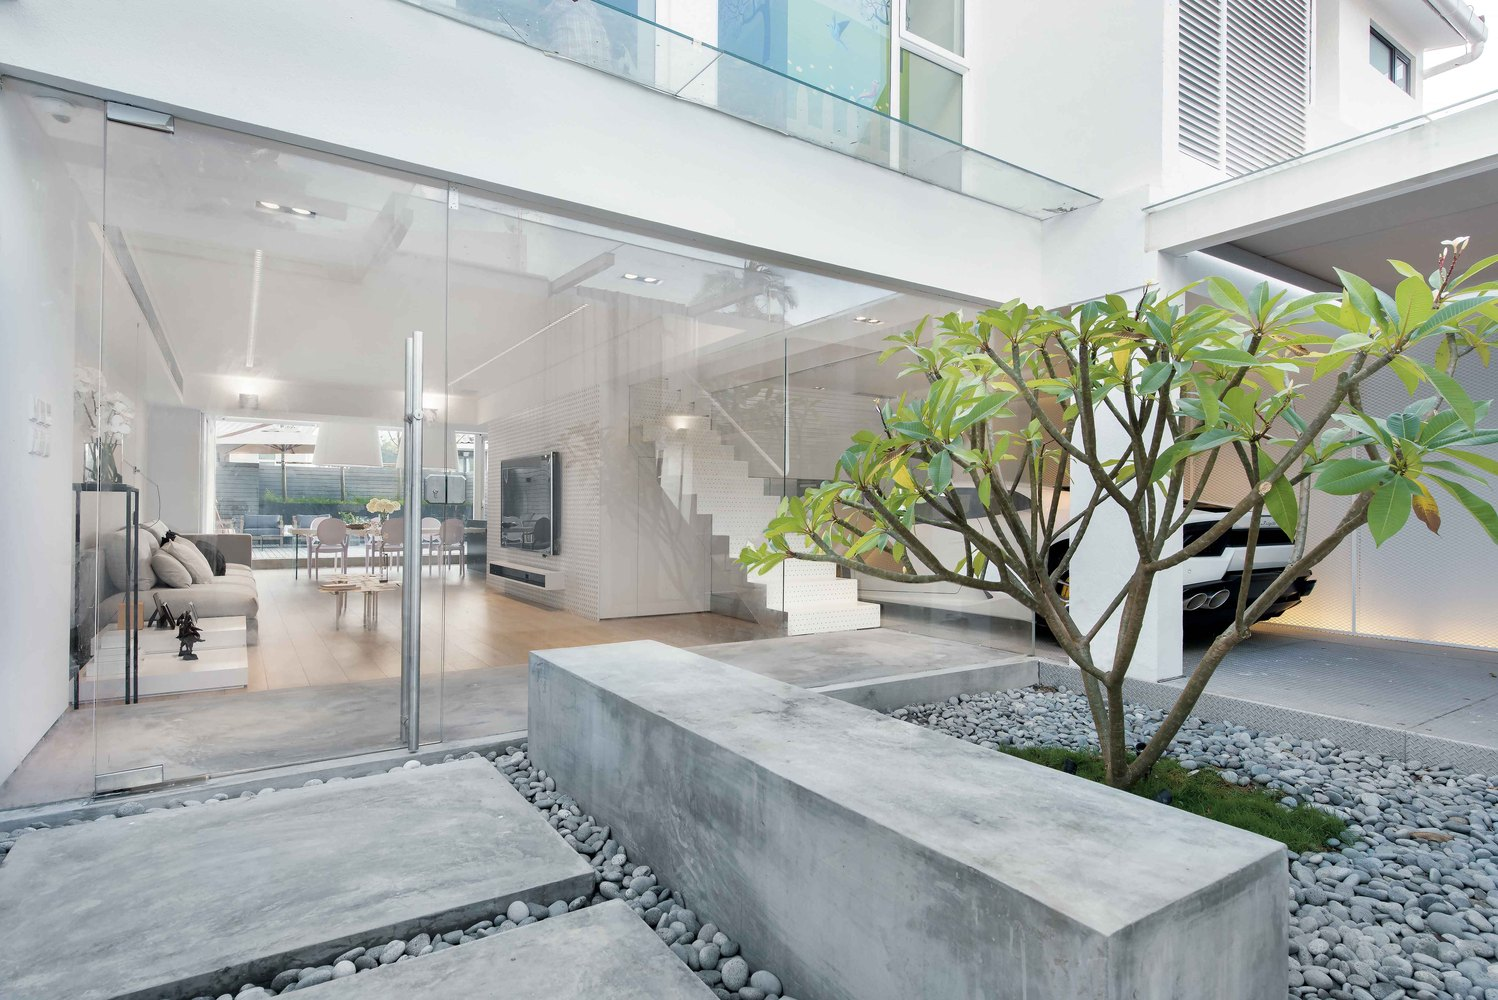 House In Hong Kong,Courtesy Of Millimeter Interior Design